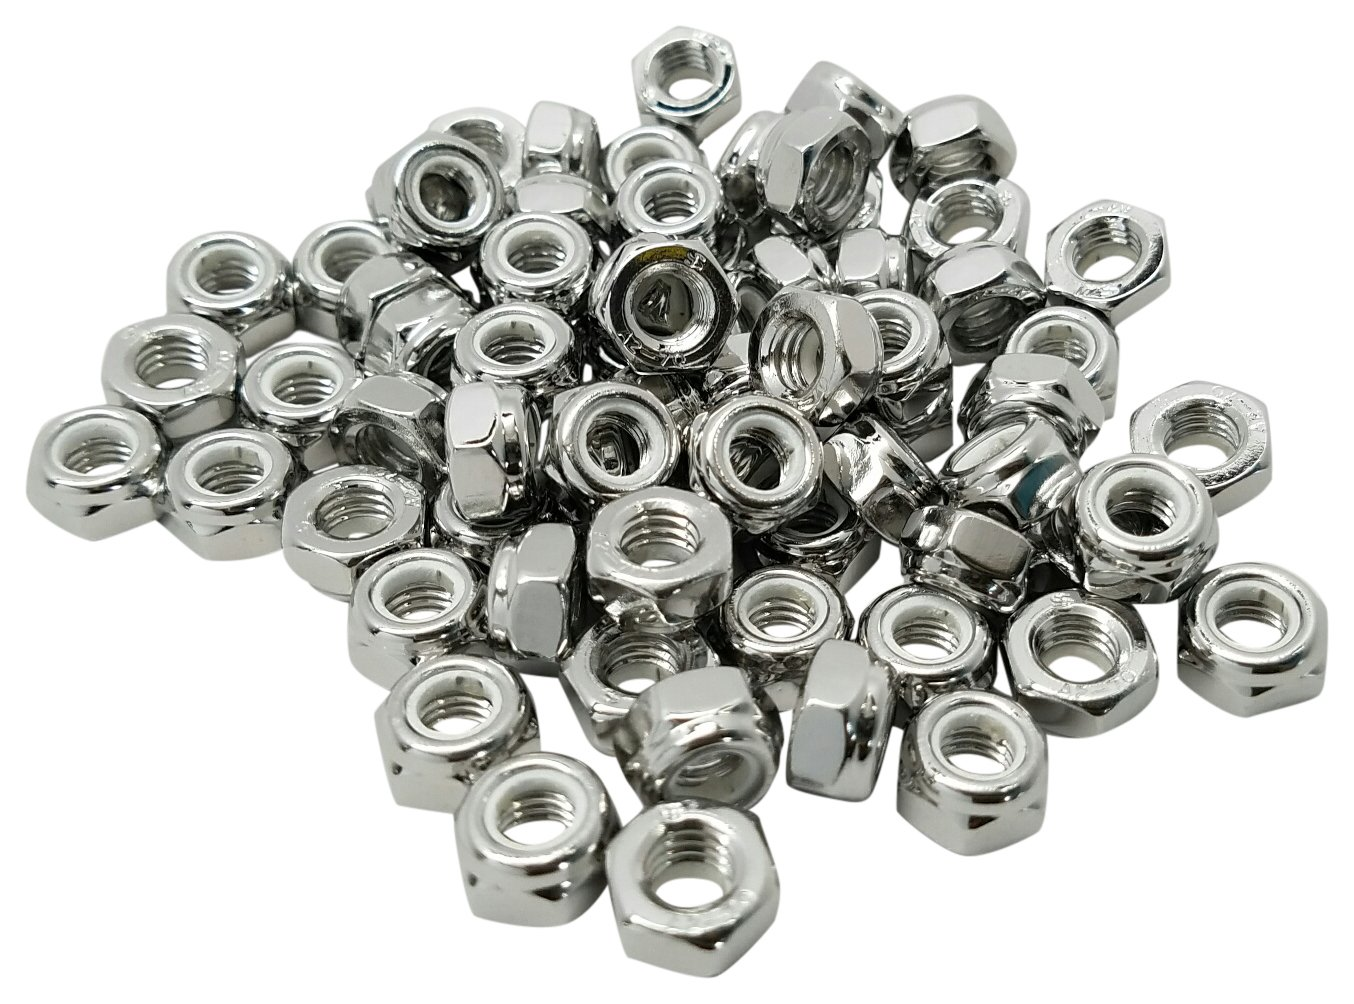 FOREVERBOLT FB3CP5811 Coupling HEX NUT PK 1 NL-19 Finish 316 Stainless Steel 5//8-11